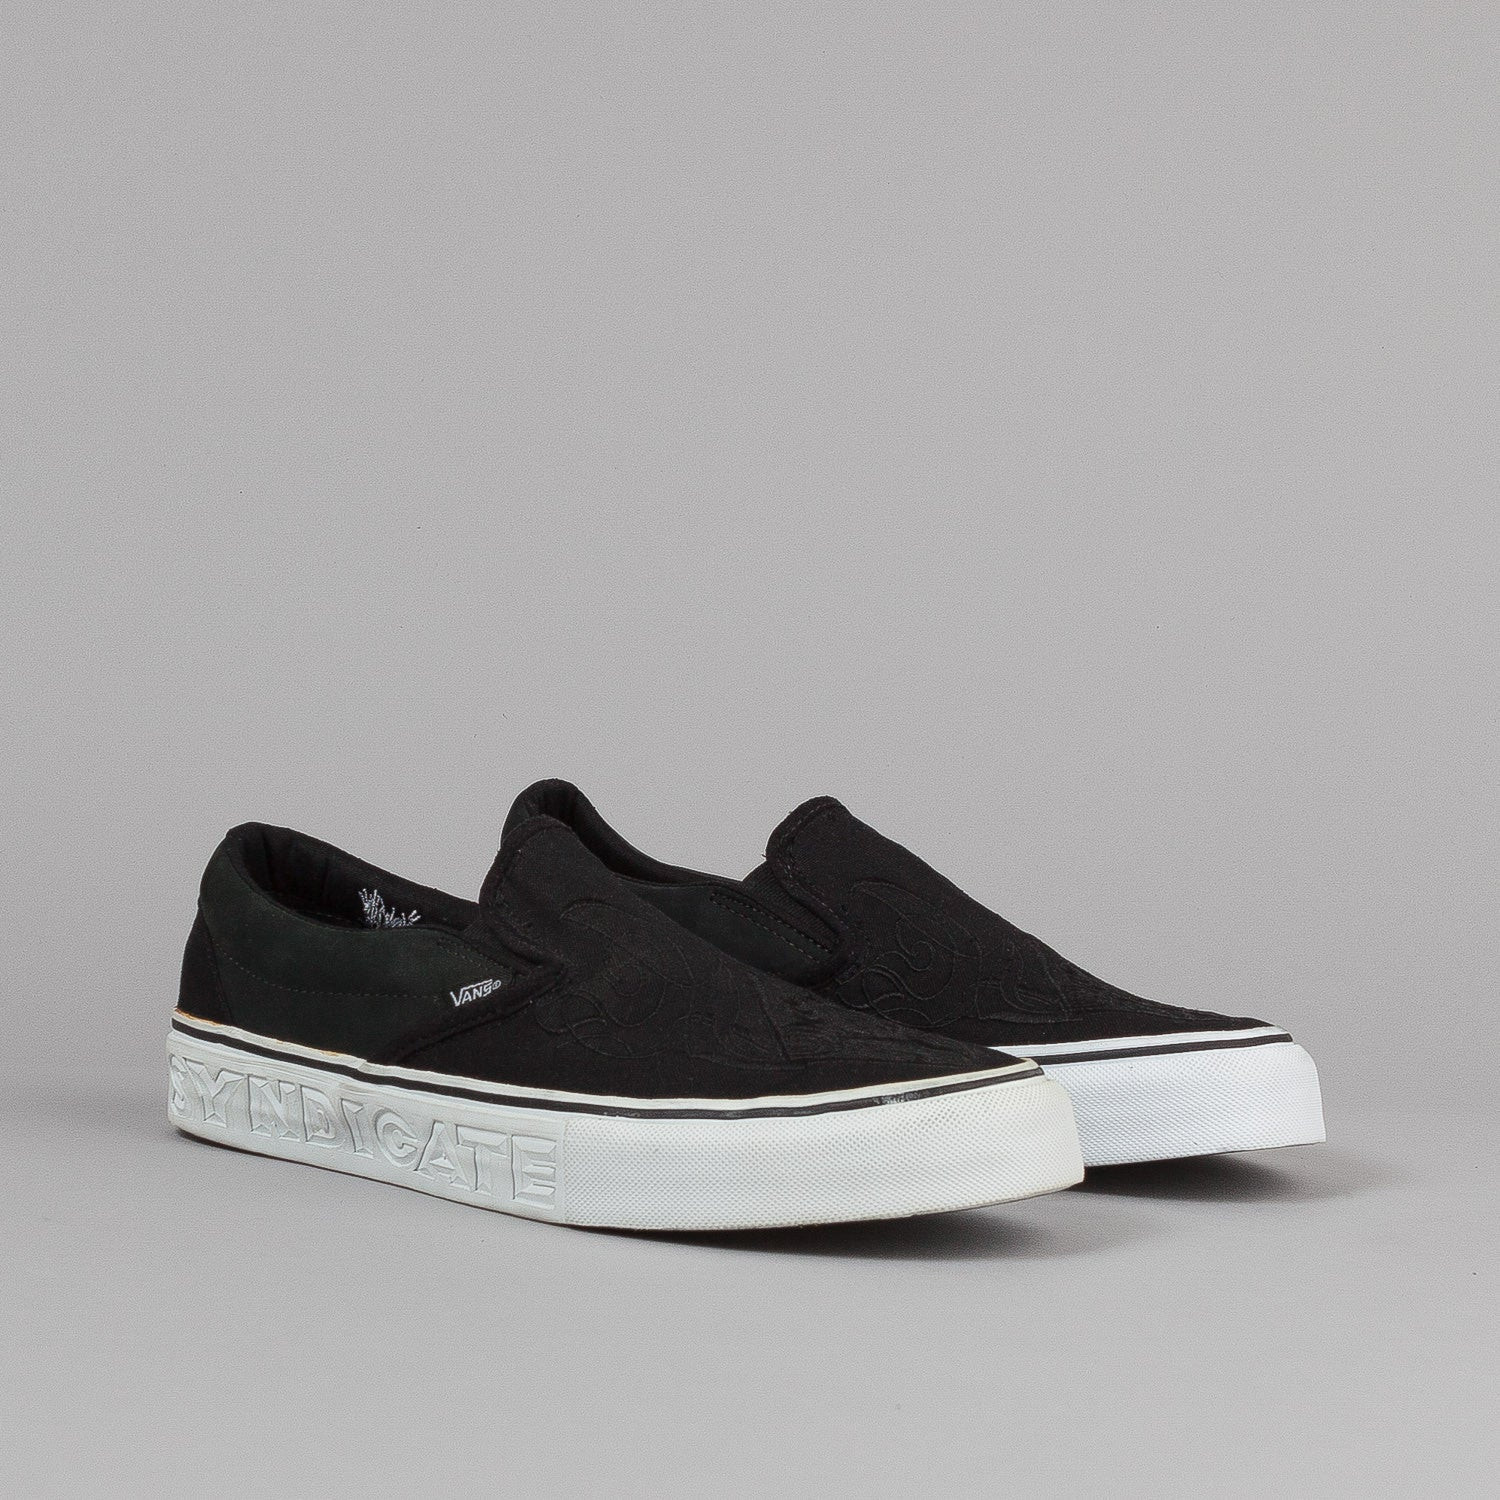 Vans Slip On 'S' Shoes - Black / 'Chaz'